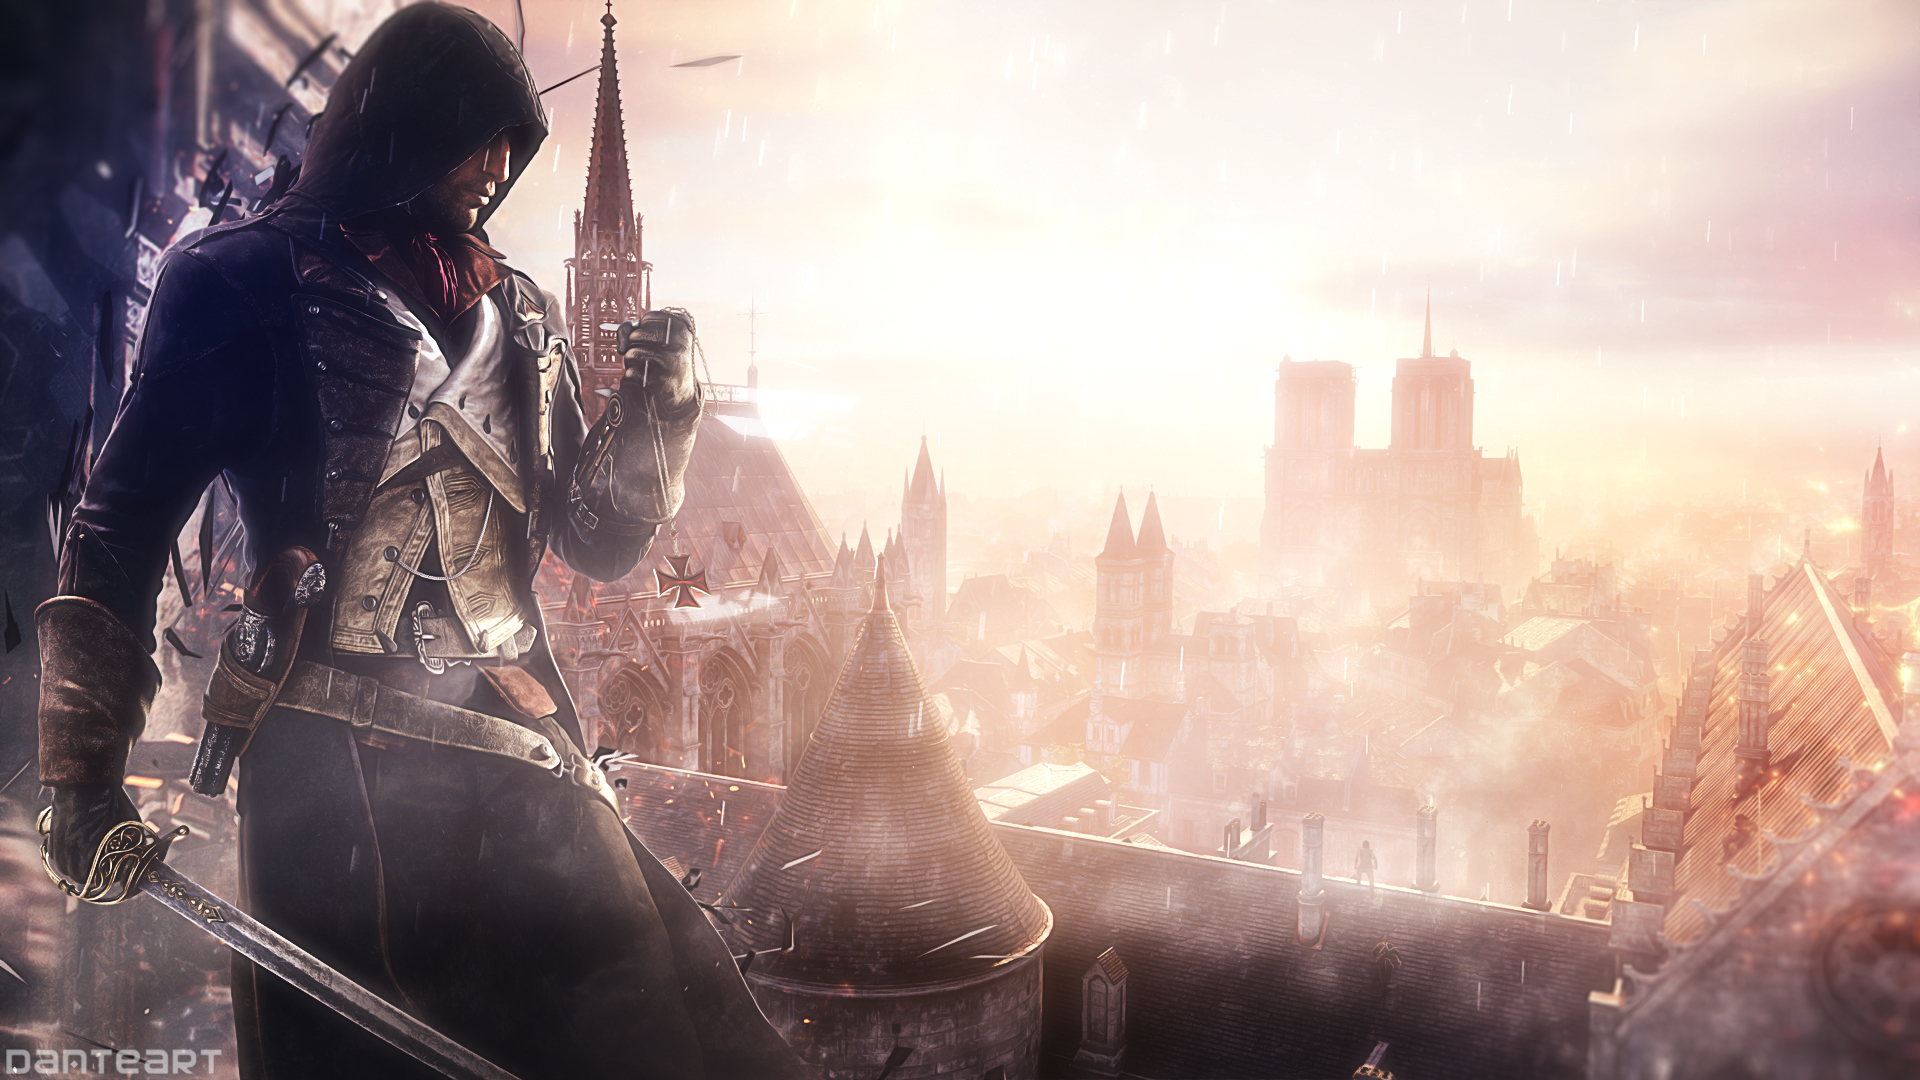 Assassin's Creed Unity Wallpaper by